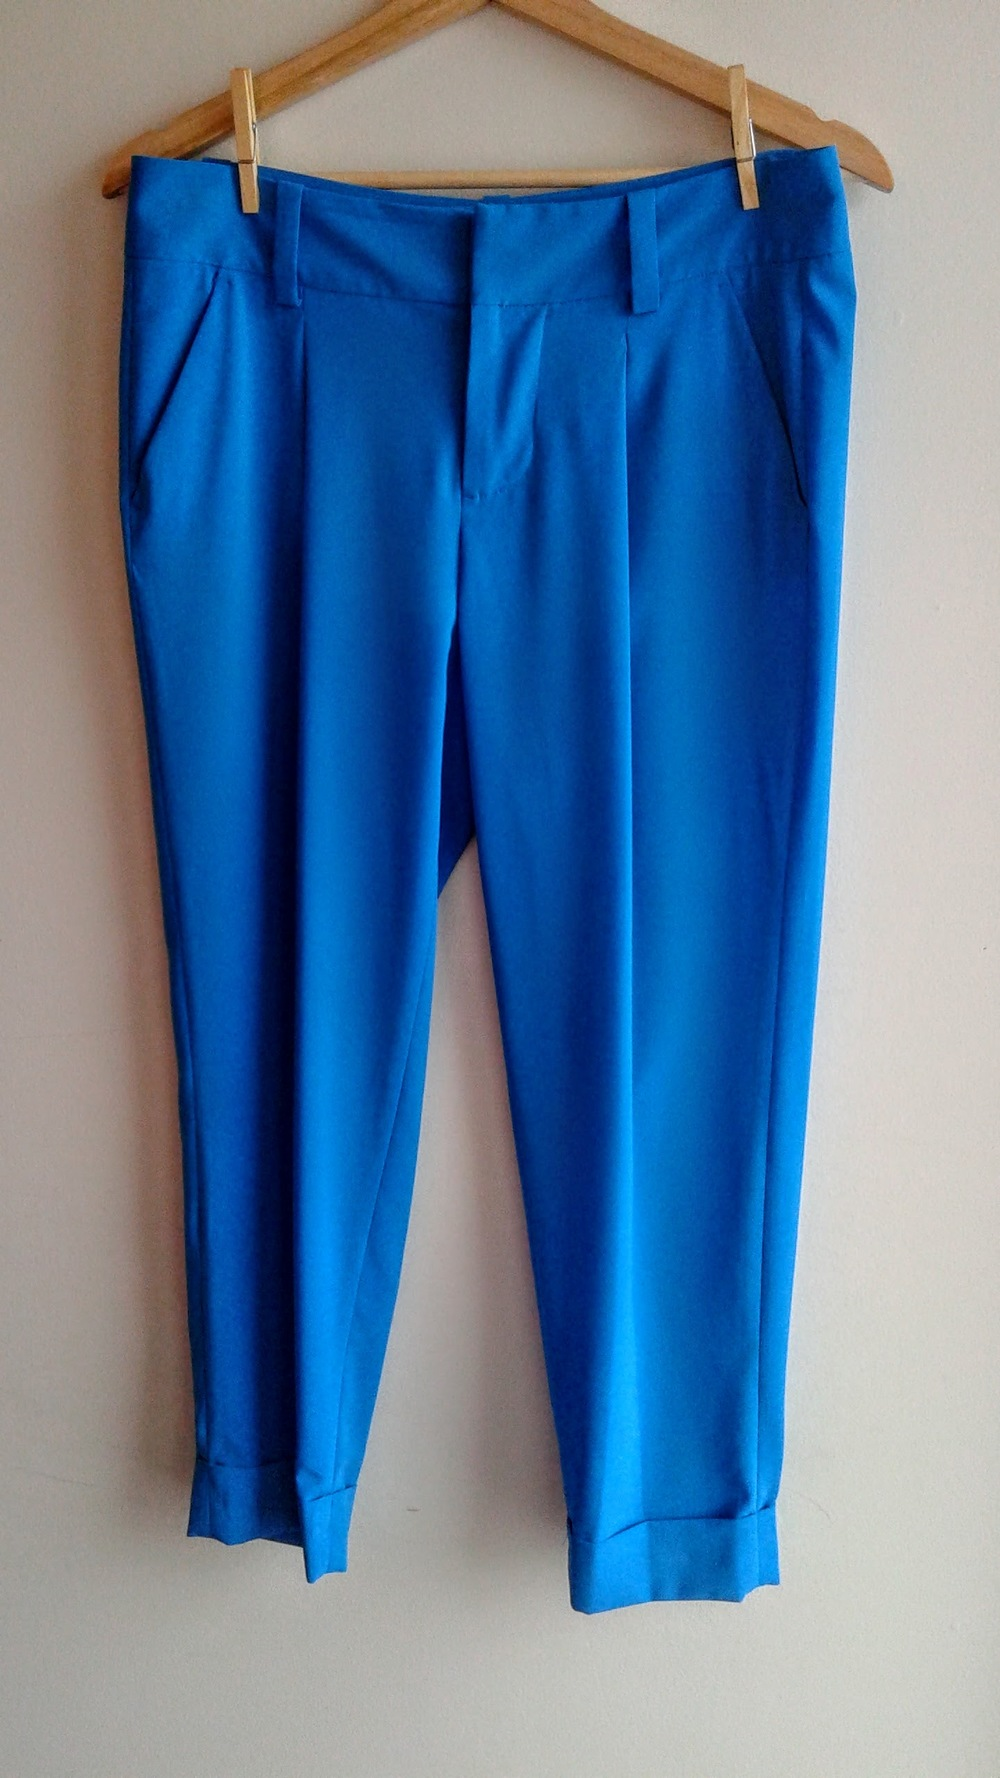 Alice+Olivia pants; Size 4; $48